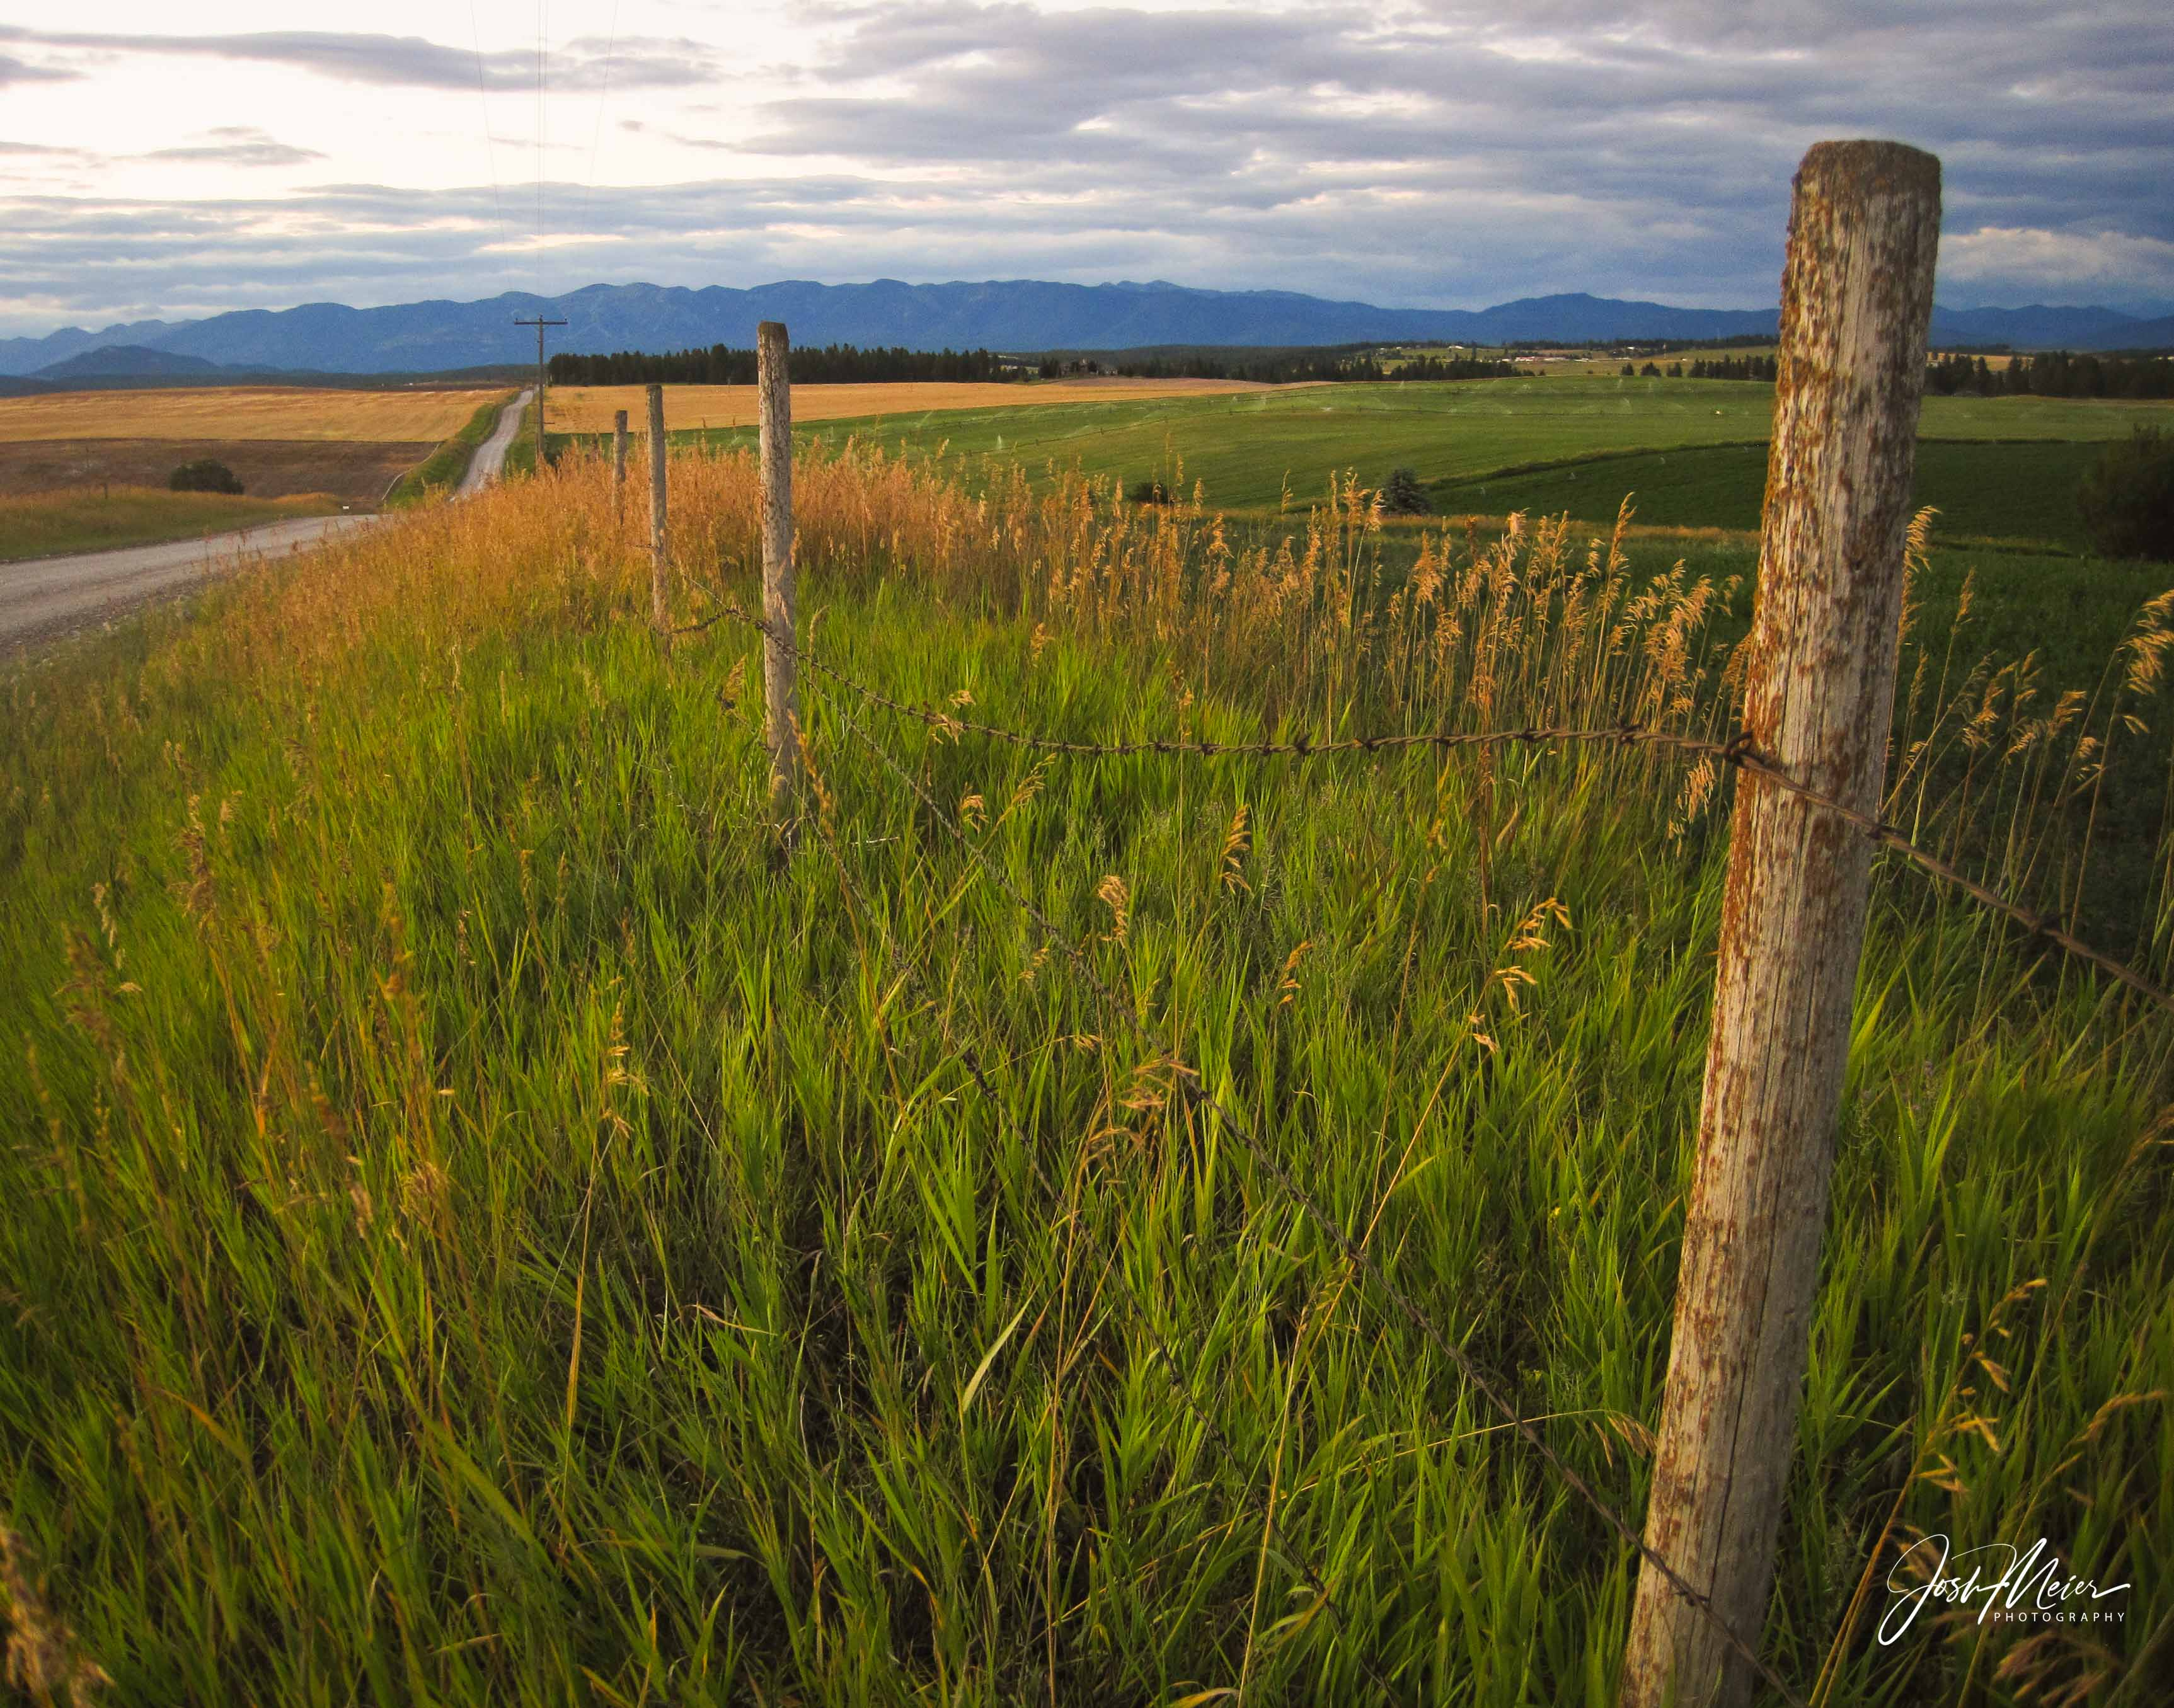 Greens and golds of late summer in the Flathead Valley, with a fence line and country road west of Kalispell, Montana, and the...